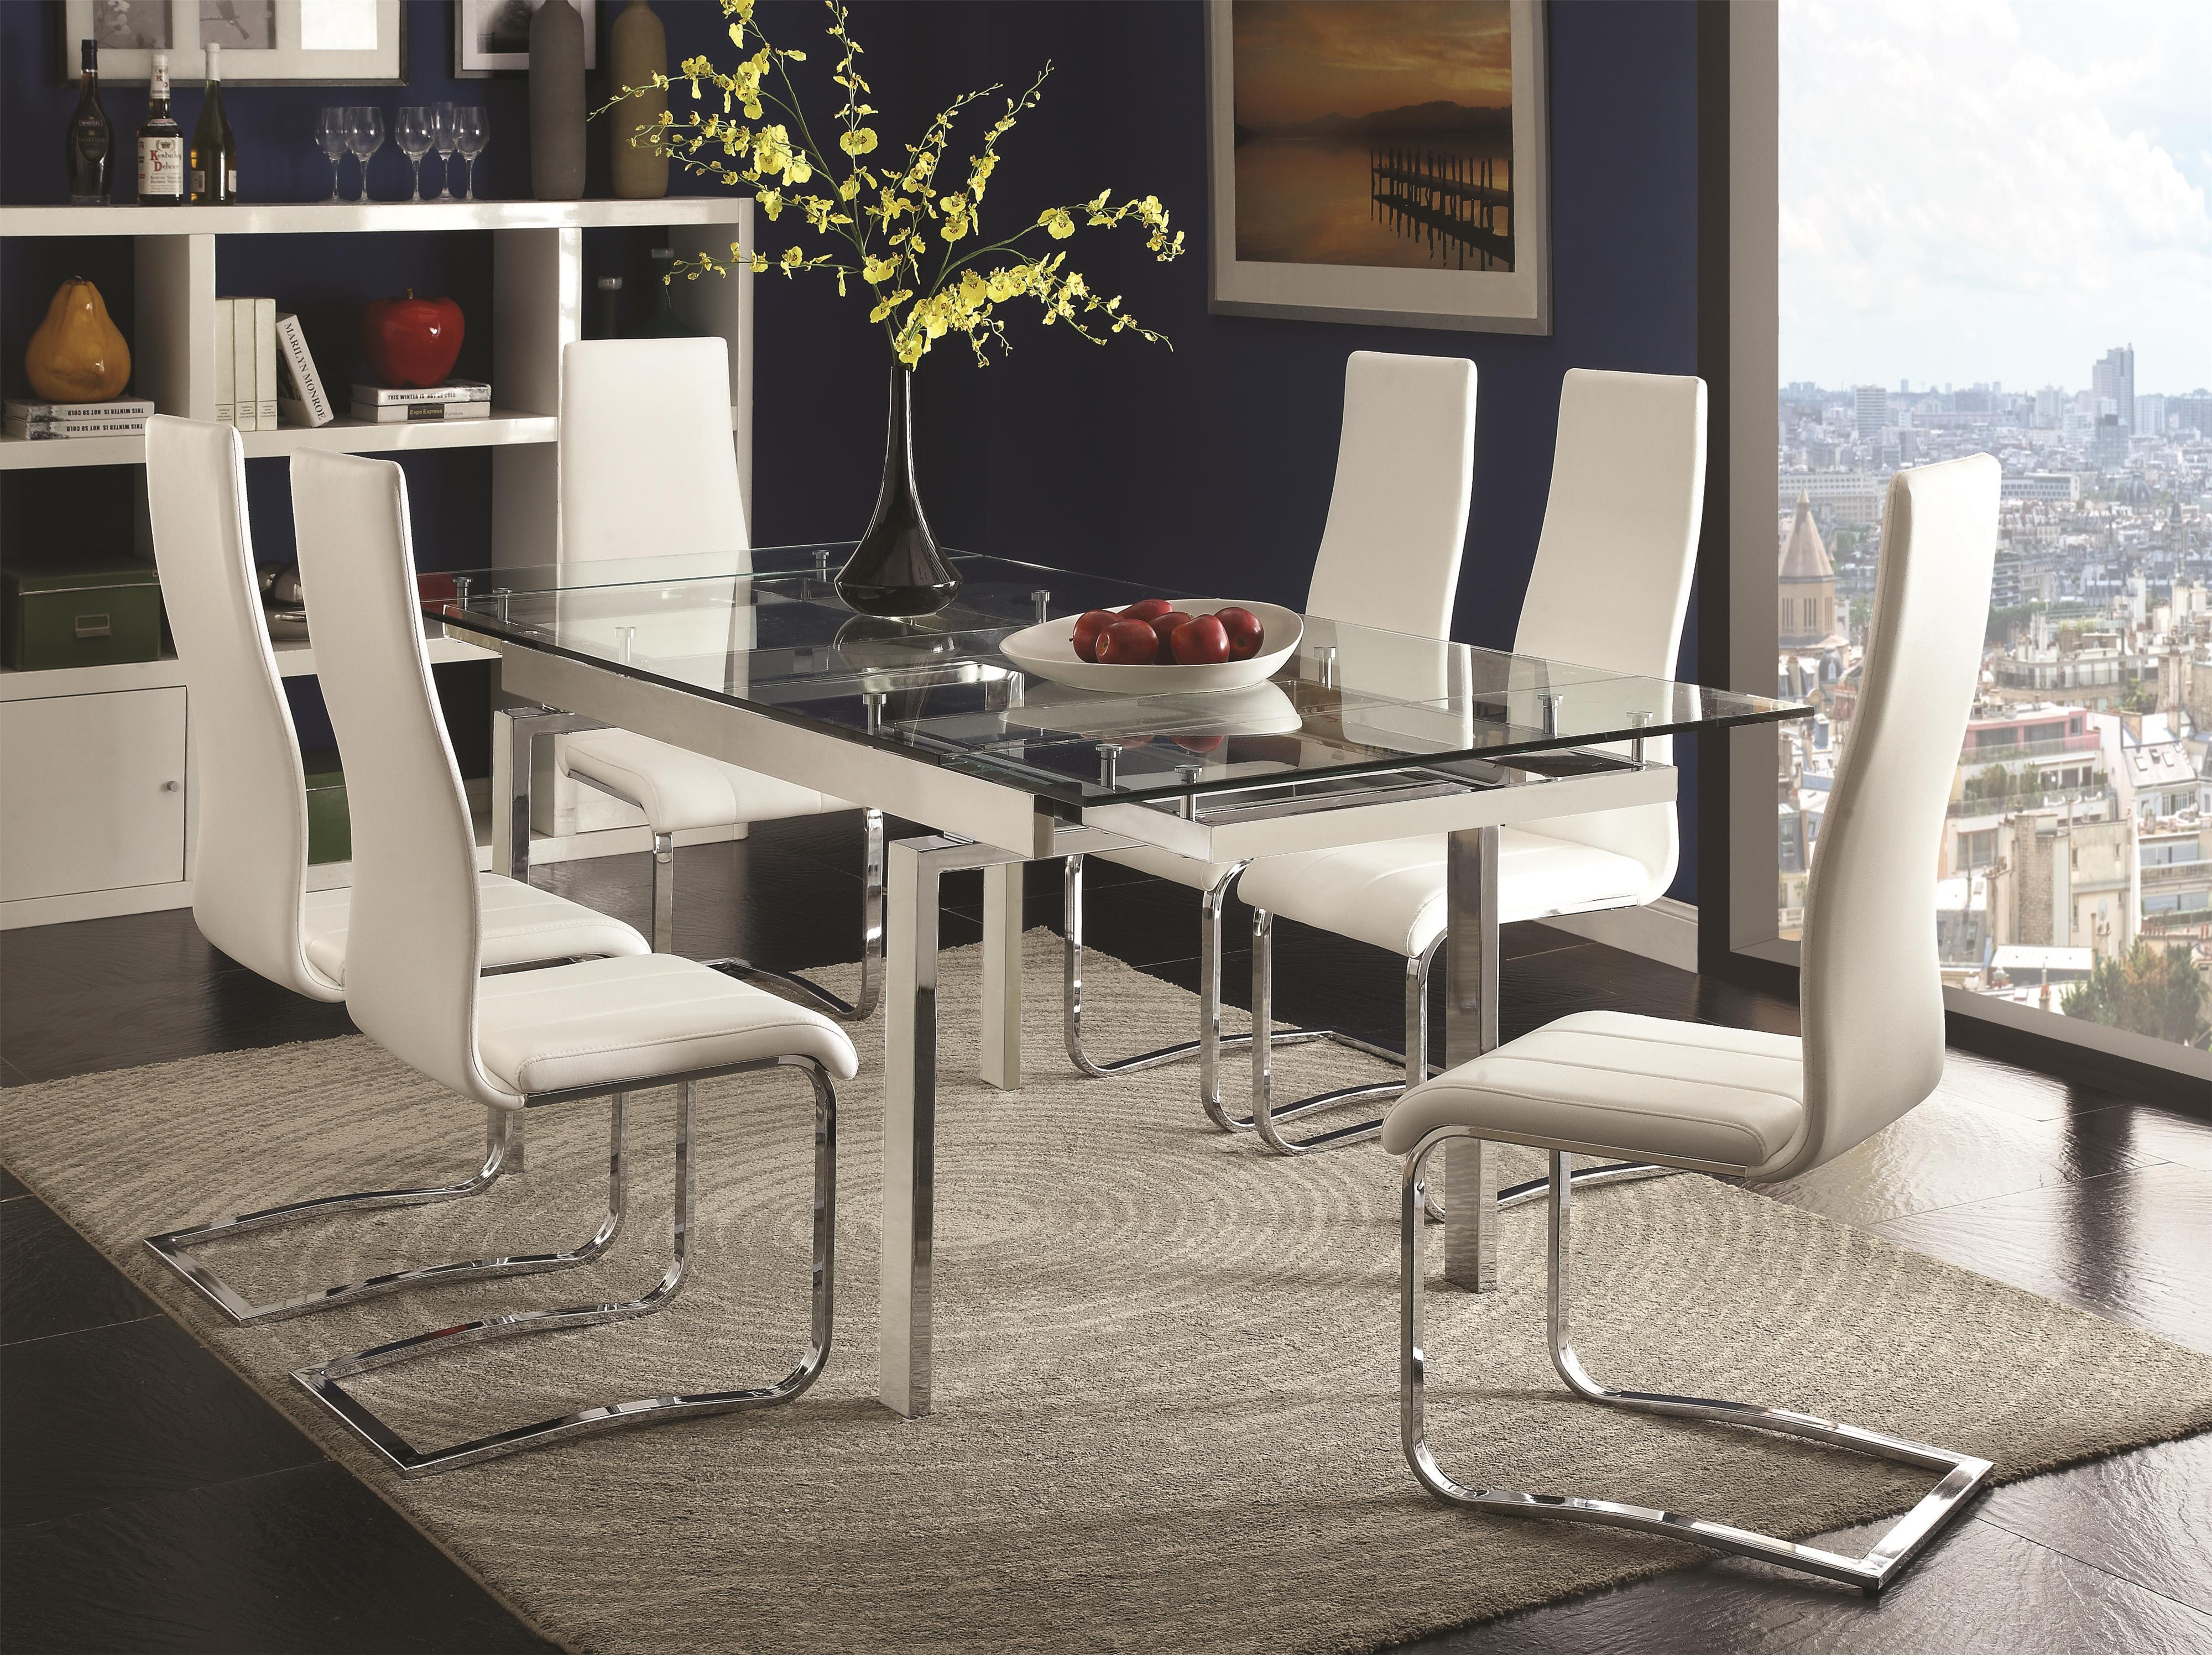 Coaster Modern Dining Contemporary Dining Room Set With Glass Table A1 Furniture Mattress Dining 7 Or More Piece Sets